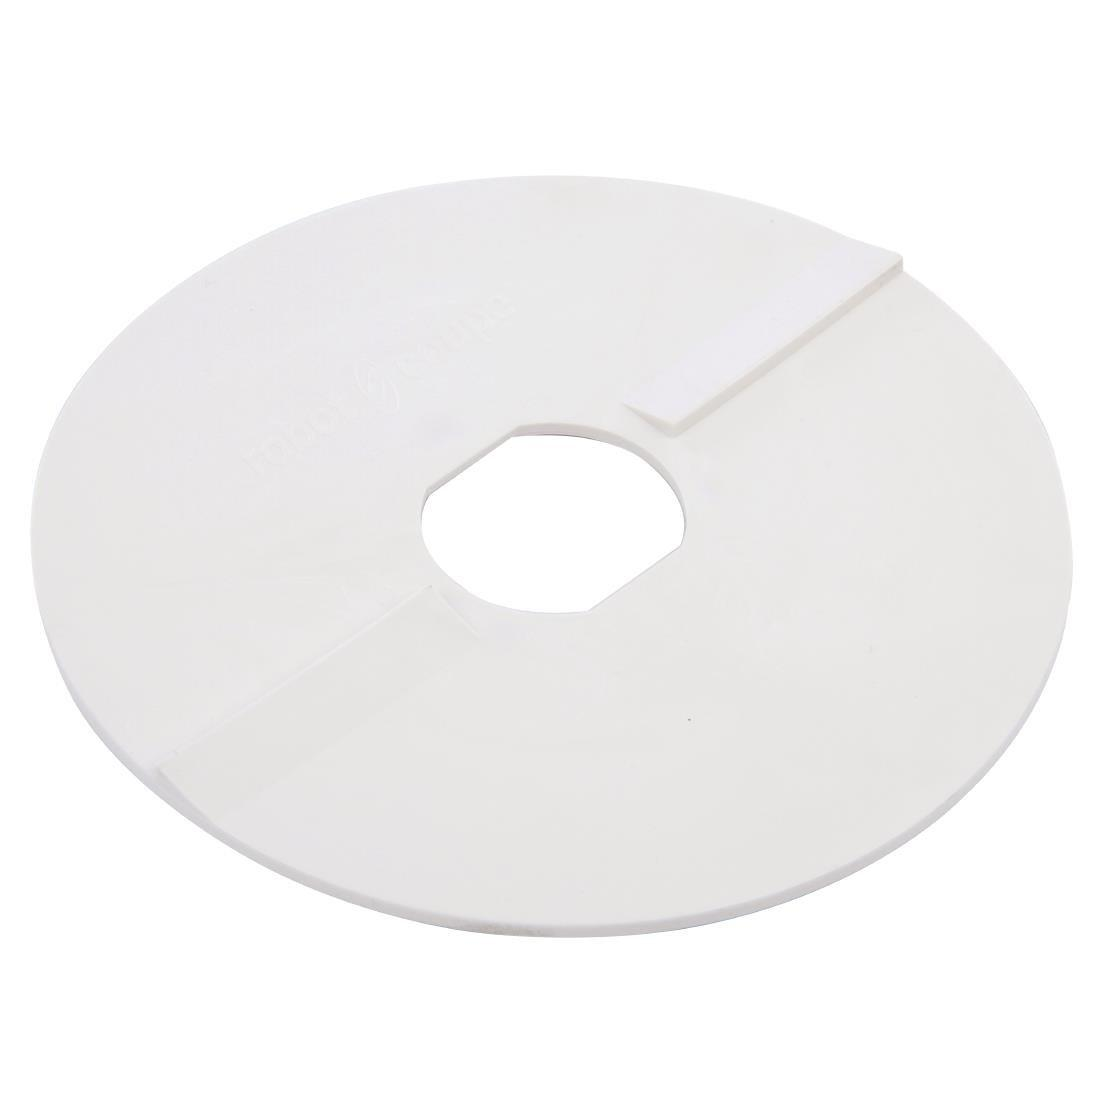 AD138 - Robot Coupe Sling Plate